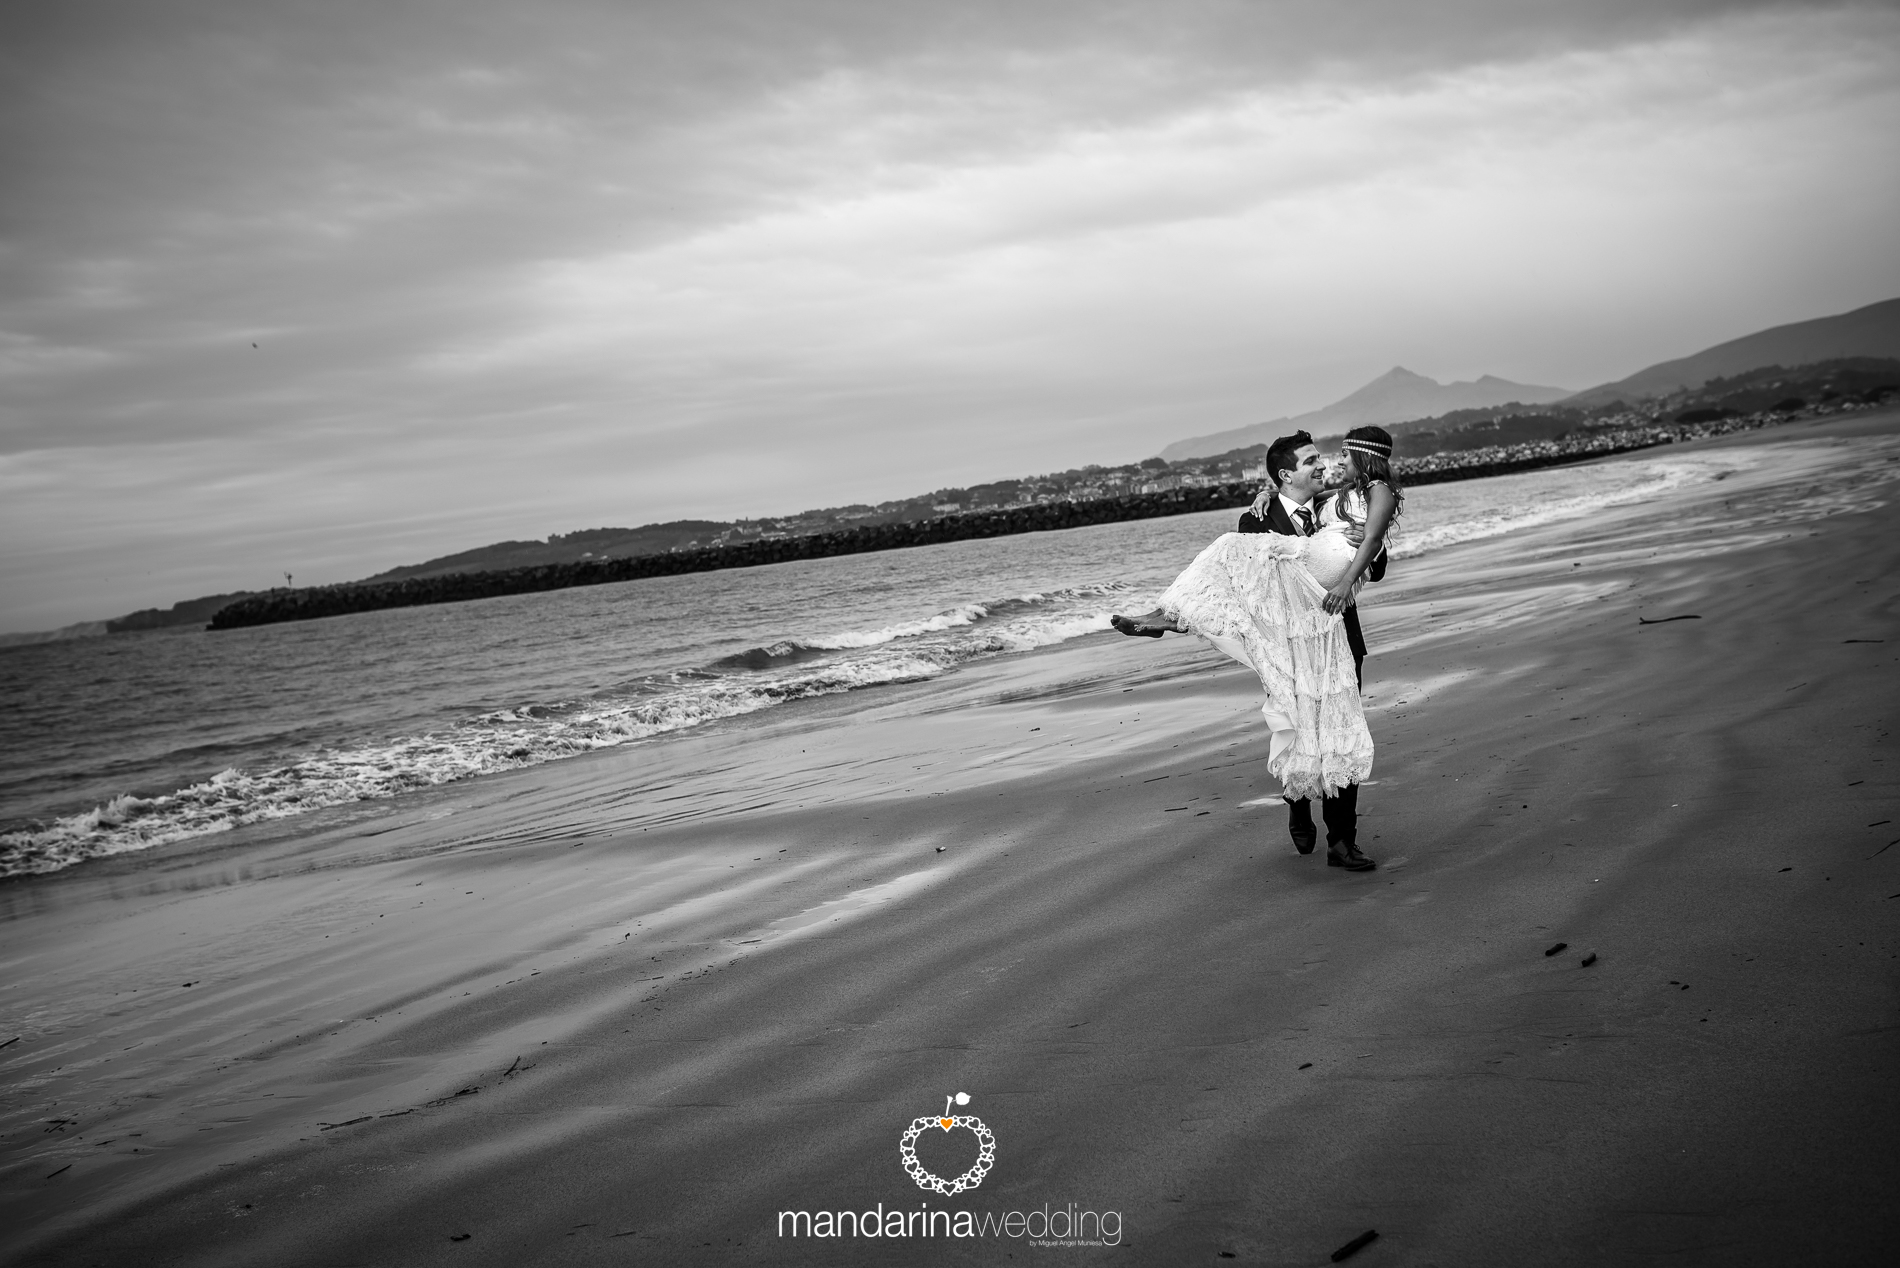 mandarina wedding_19